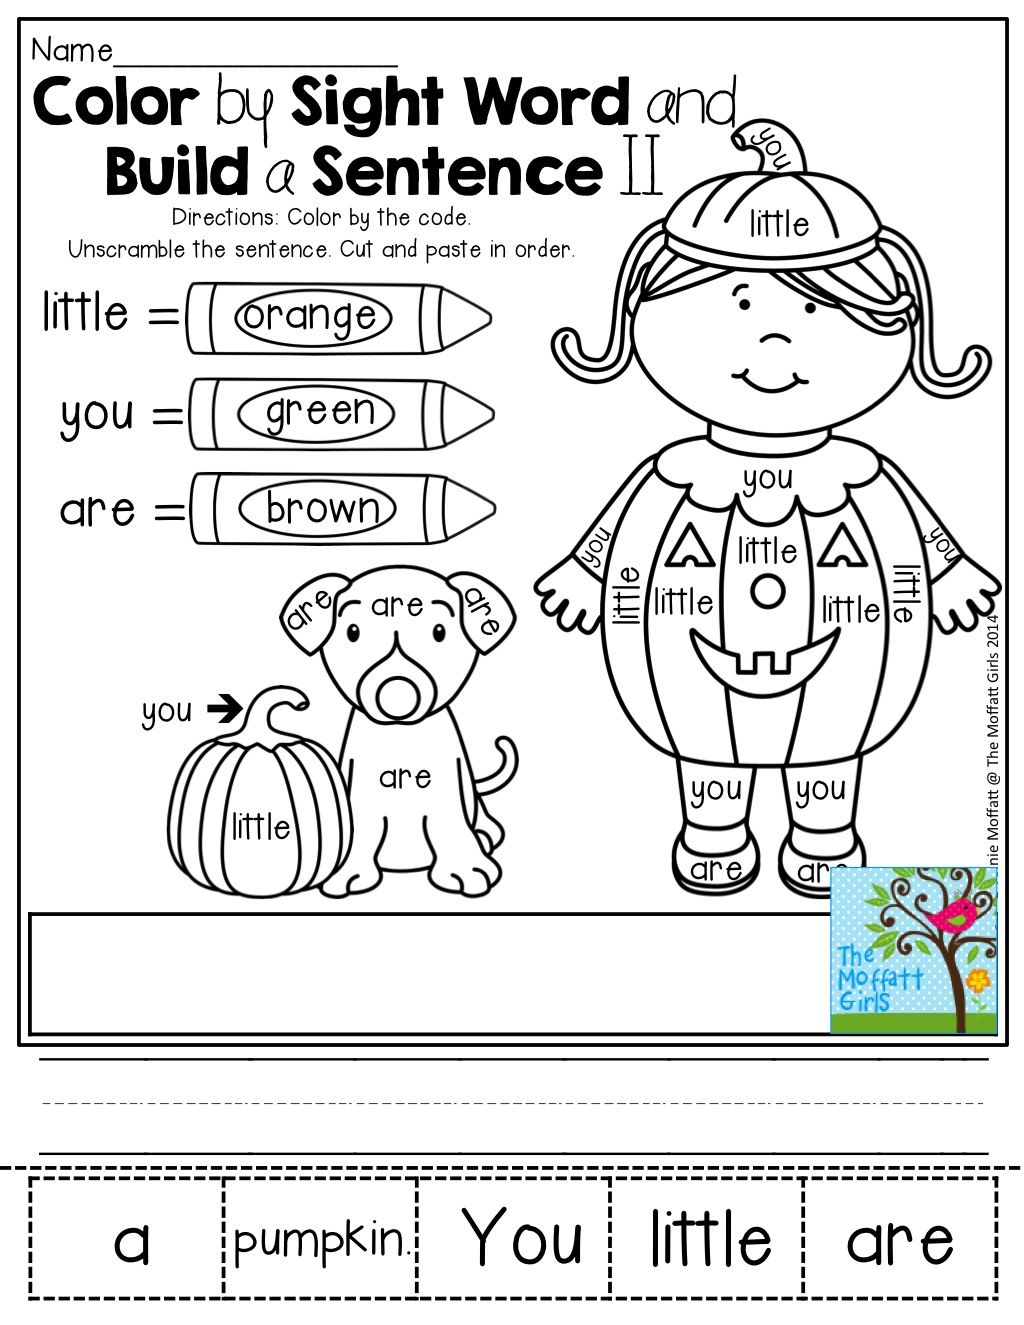 Color by Sight Word and build a sentence! | KinderLand Collaborative ...